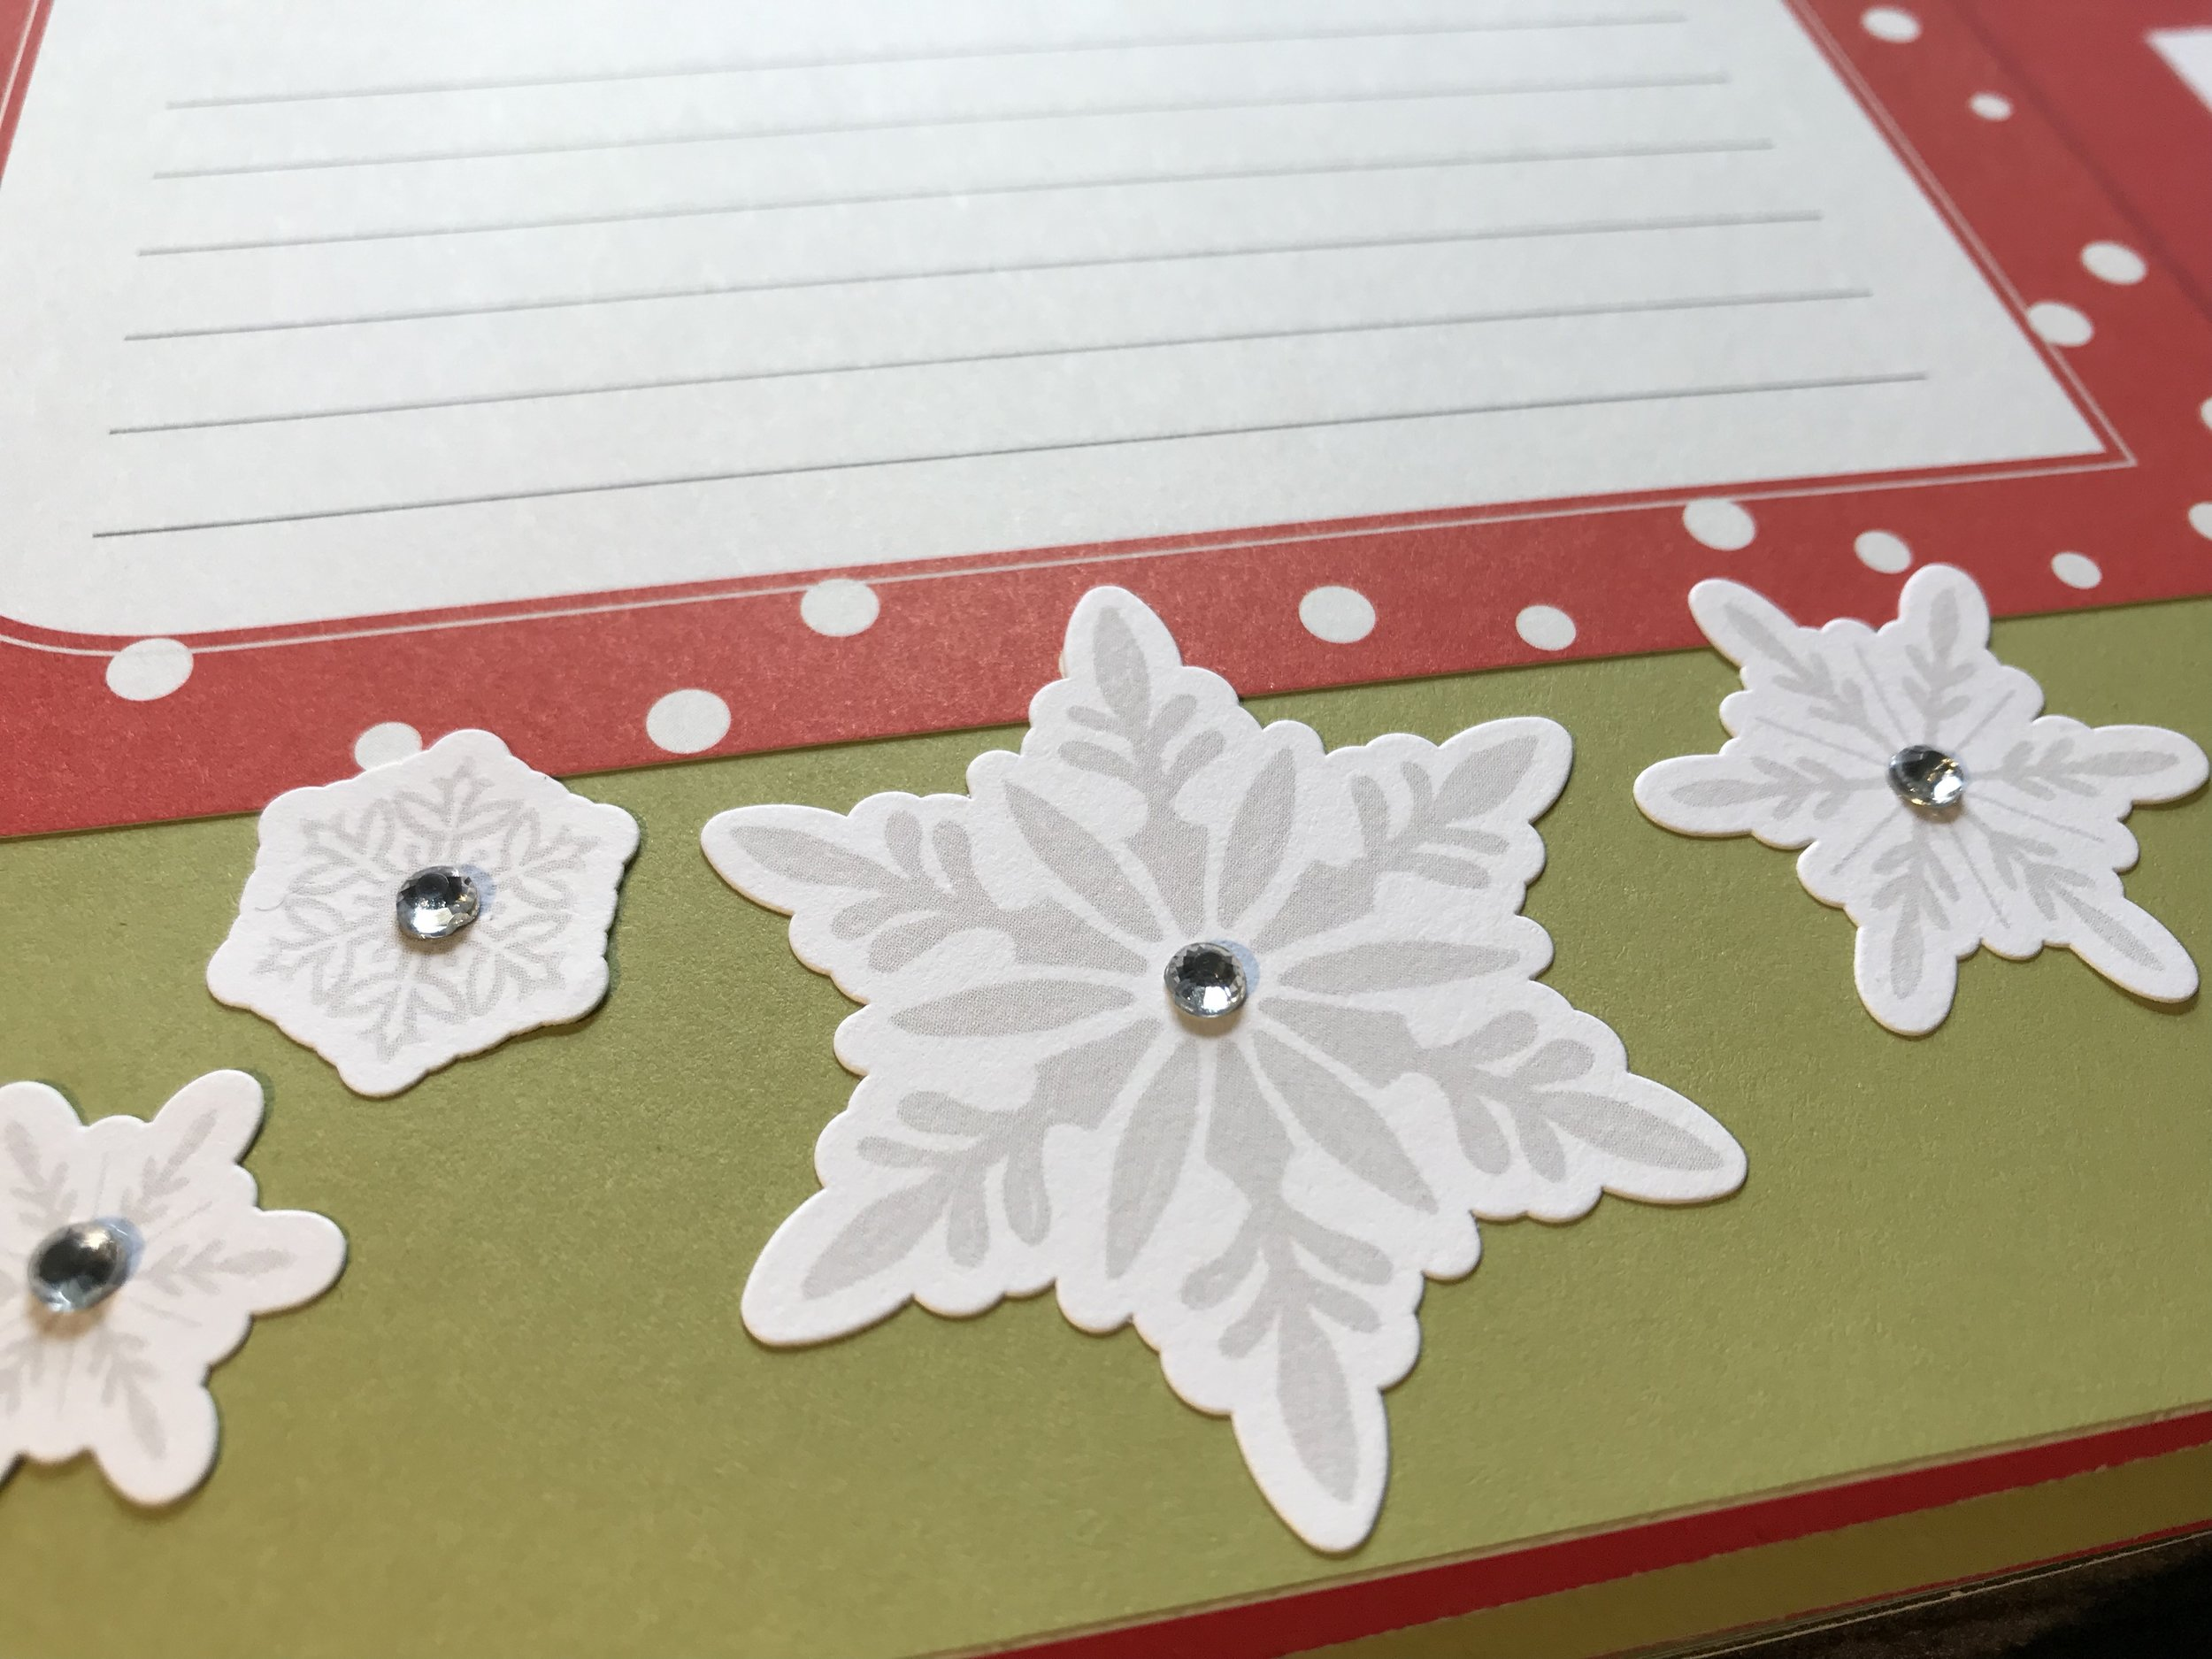 The addition on the Bitty Sparkles adds some whimsy to the snowflake stickers.